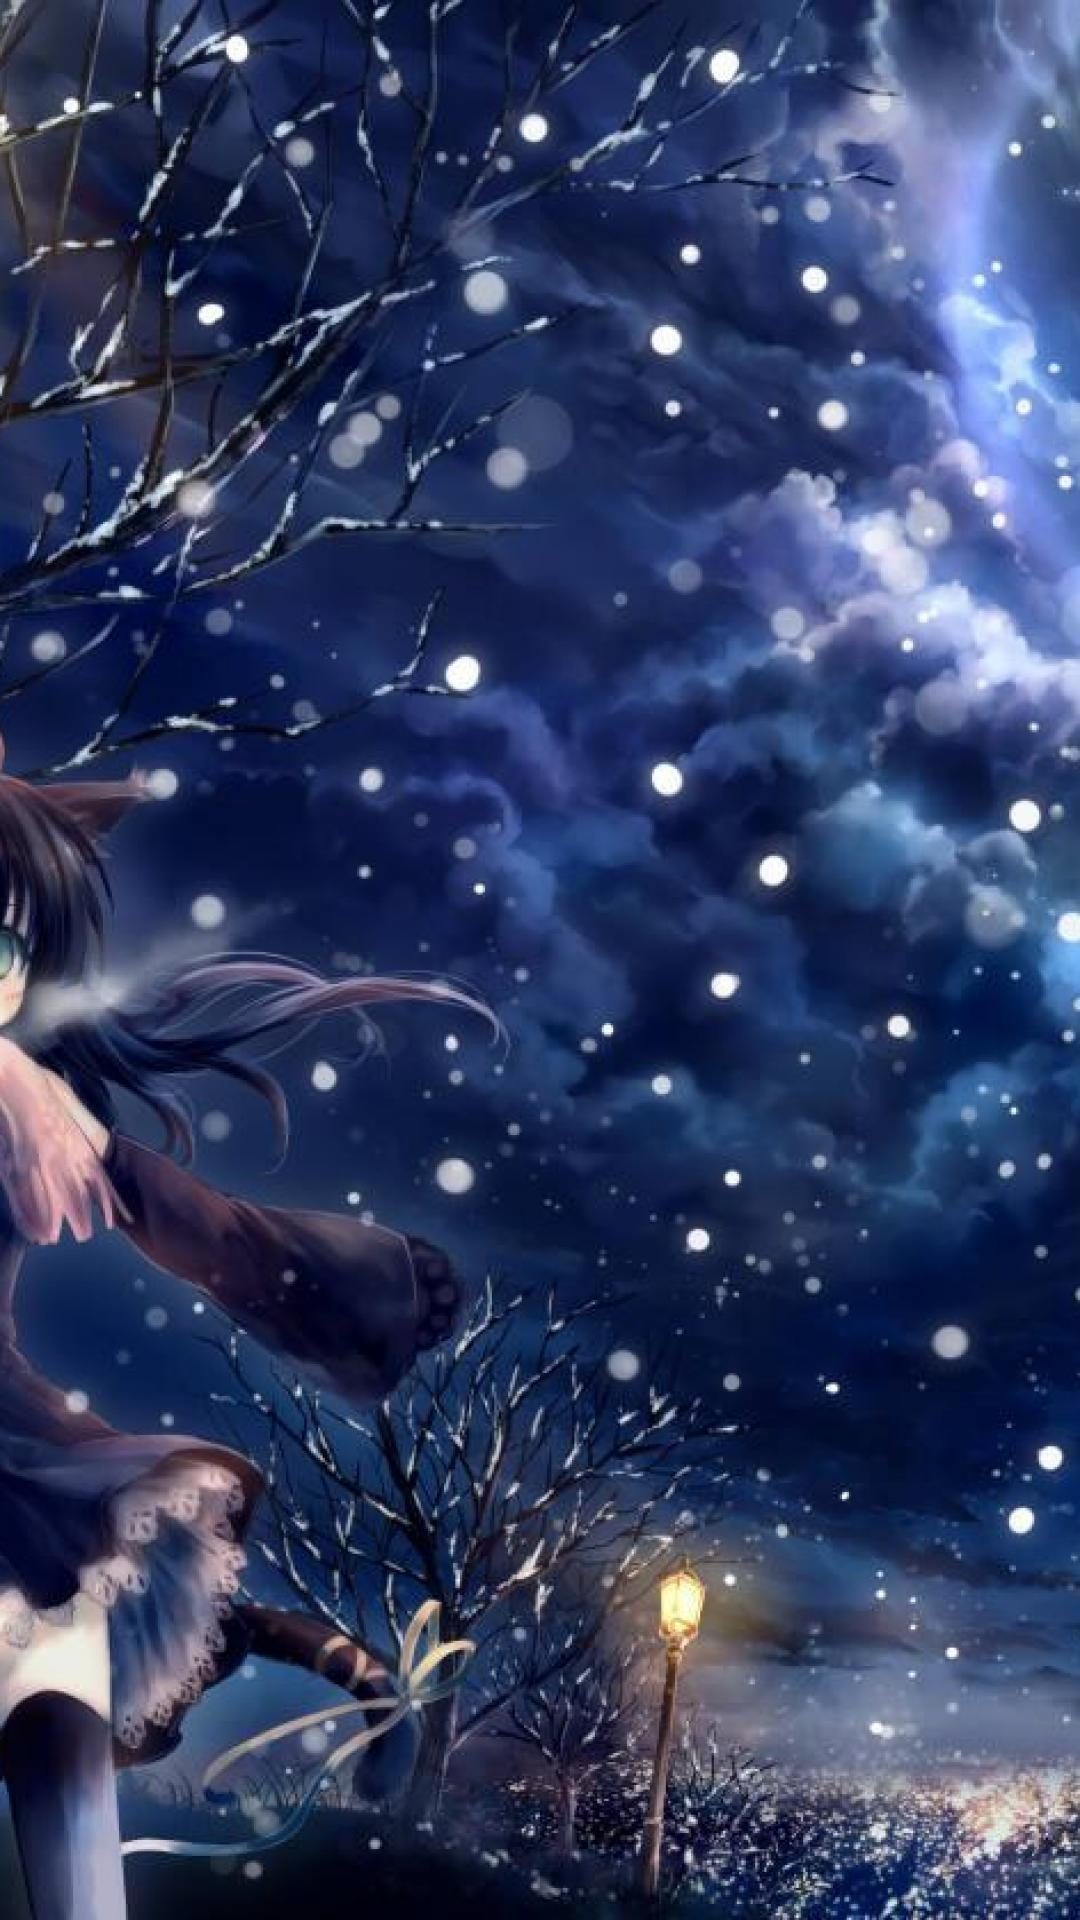 Iphone Anime Hd 1080p Wallpapers Wallpaper Cave